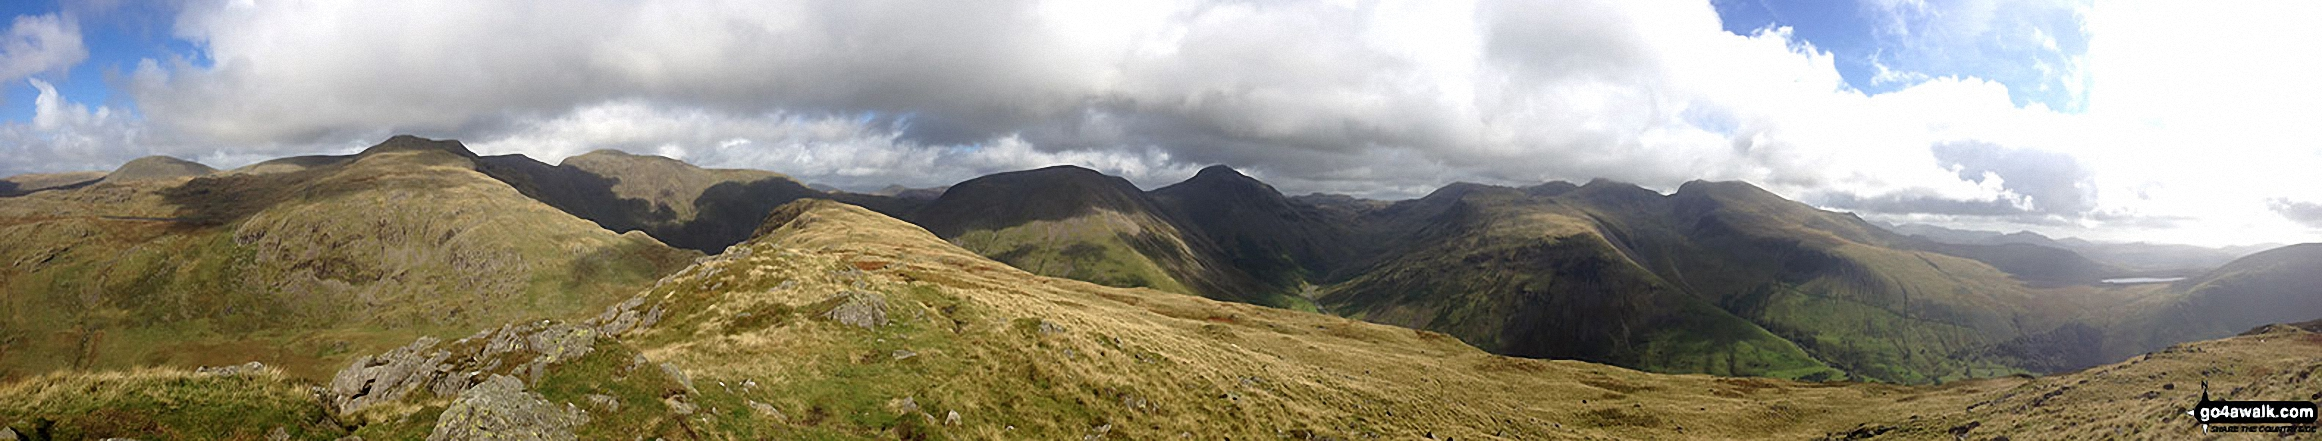 Haycock, Little Scoat Fell, Red Pike (Wasdale), Pillar, Top of Stirrup Crag, Kirk Fell, Great Gable, Great End, Lingmell, Scafell Pike, Sca Fell, Slightside, Harter Fell (Eskdale) and Burnmoor Tarn from the summit of Yewbarrow